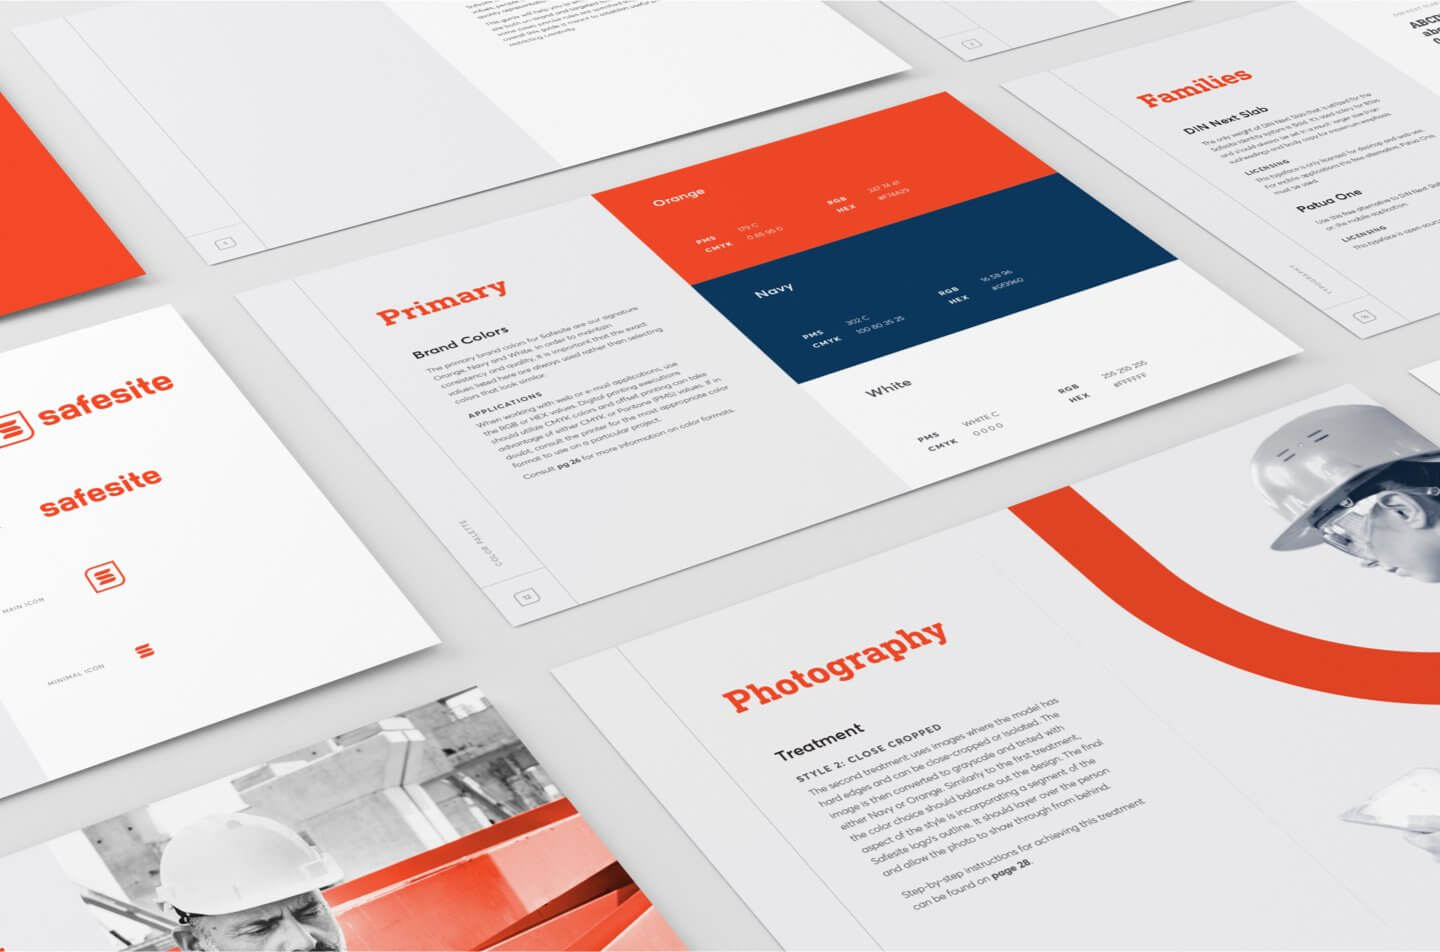 Safesite brand guidelines manual